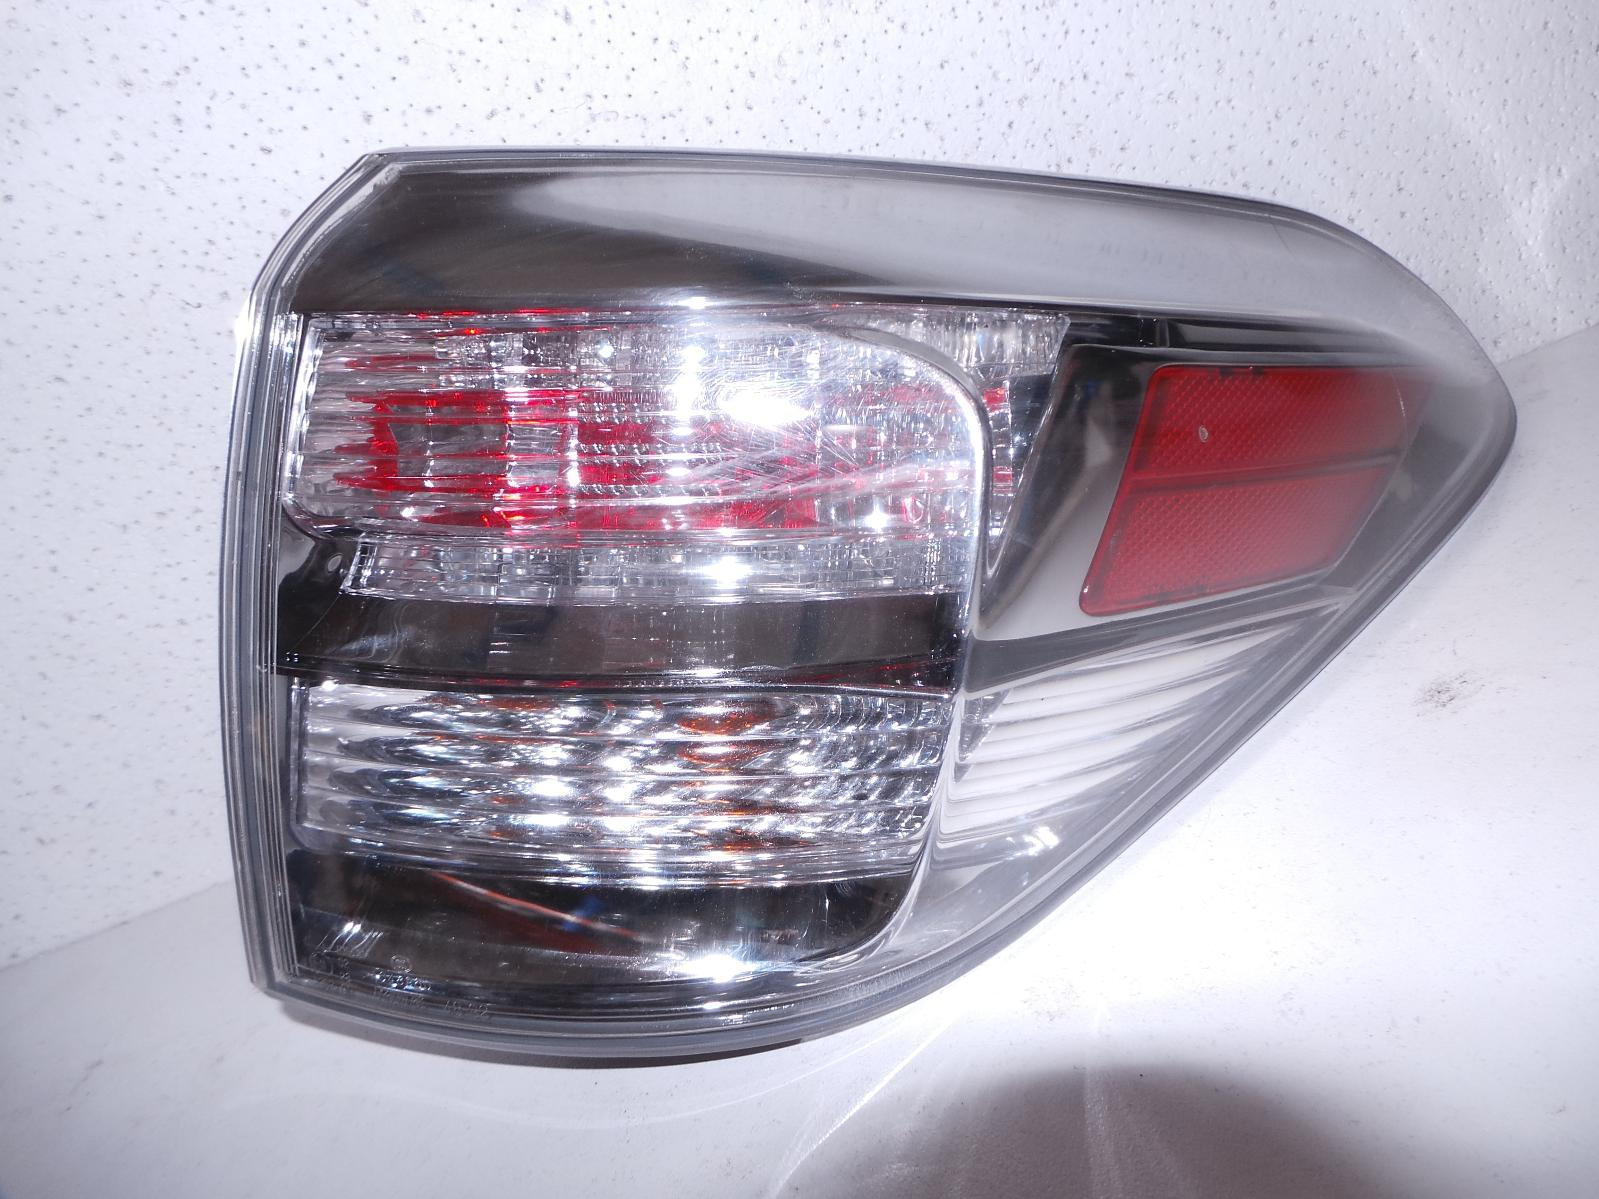 LEXUS RX350, Right Taillight, GGL1#, RX450H, IN BODY, 03/09-05/12